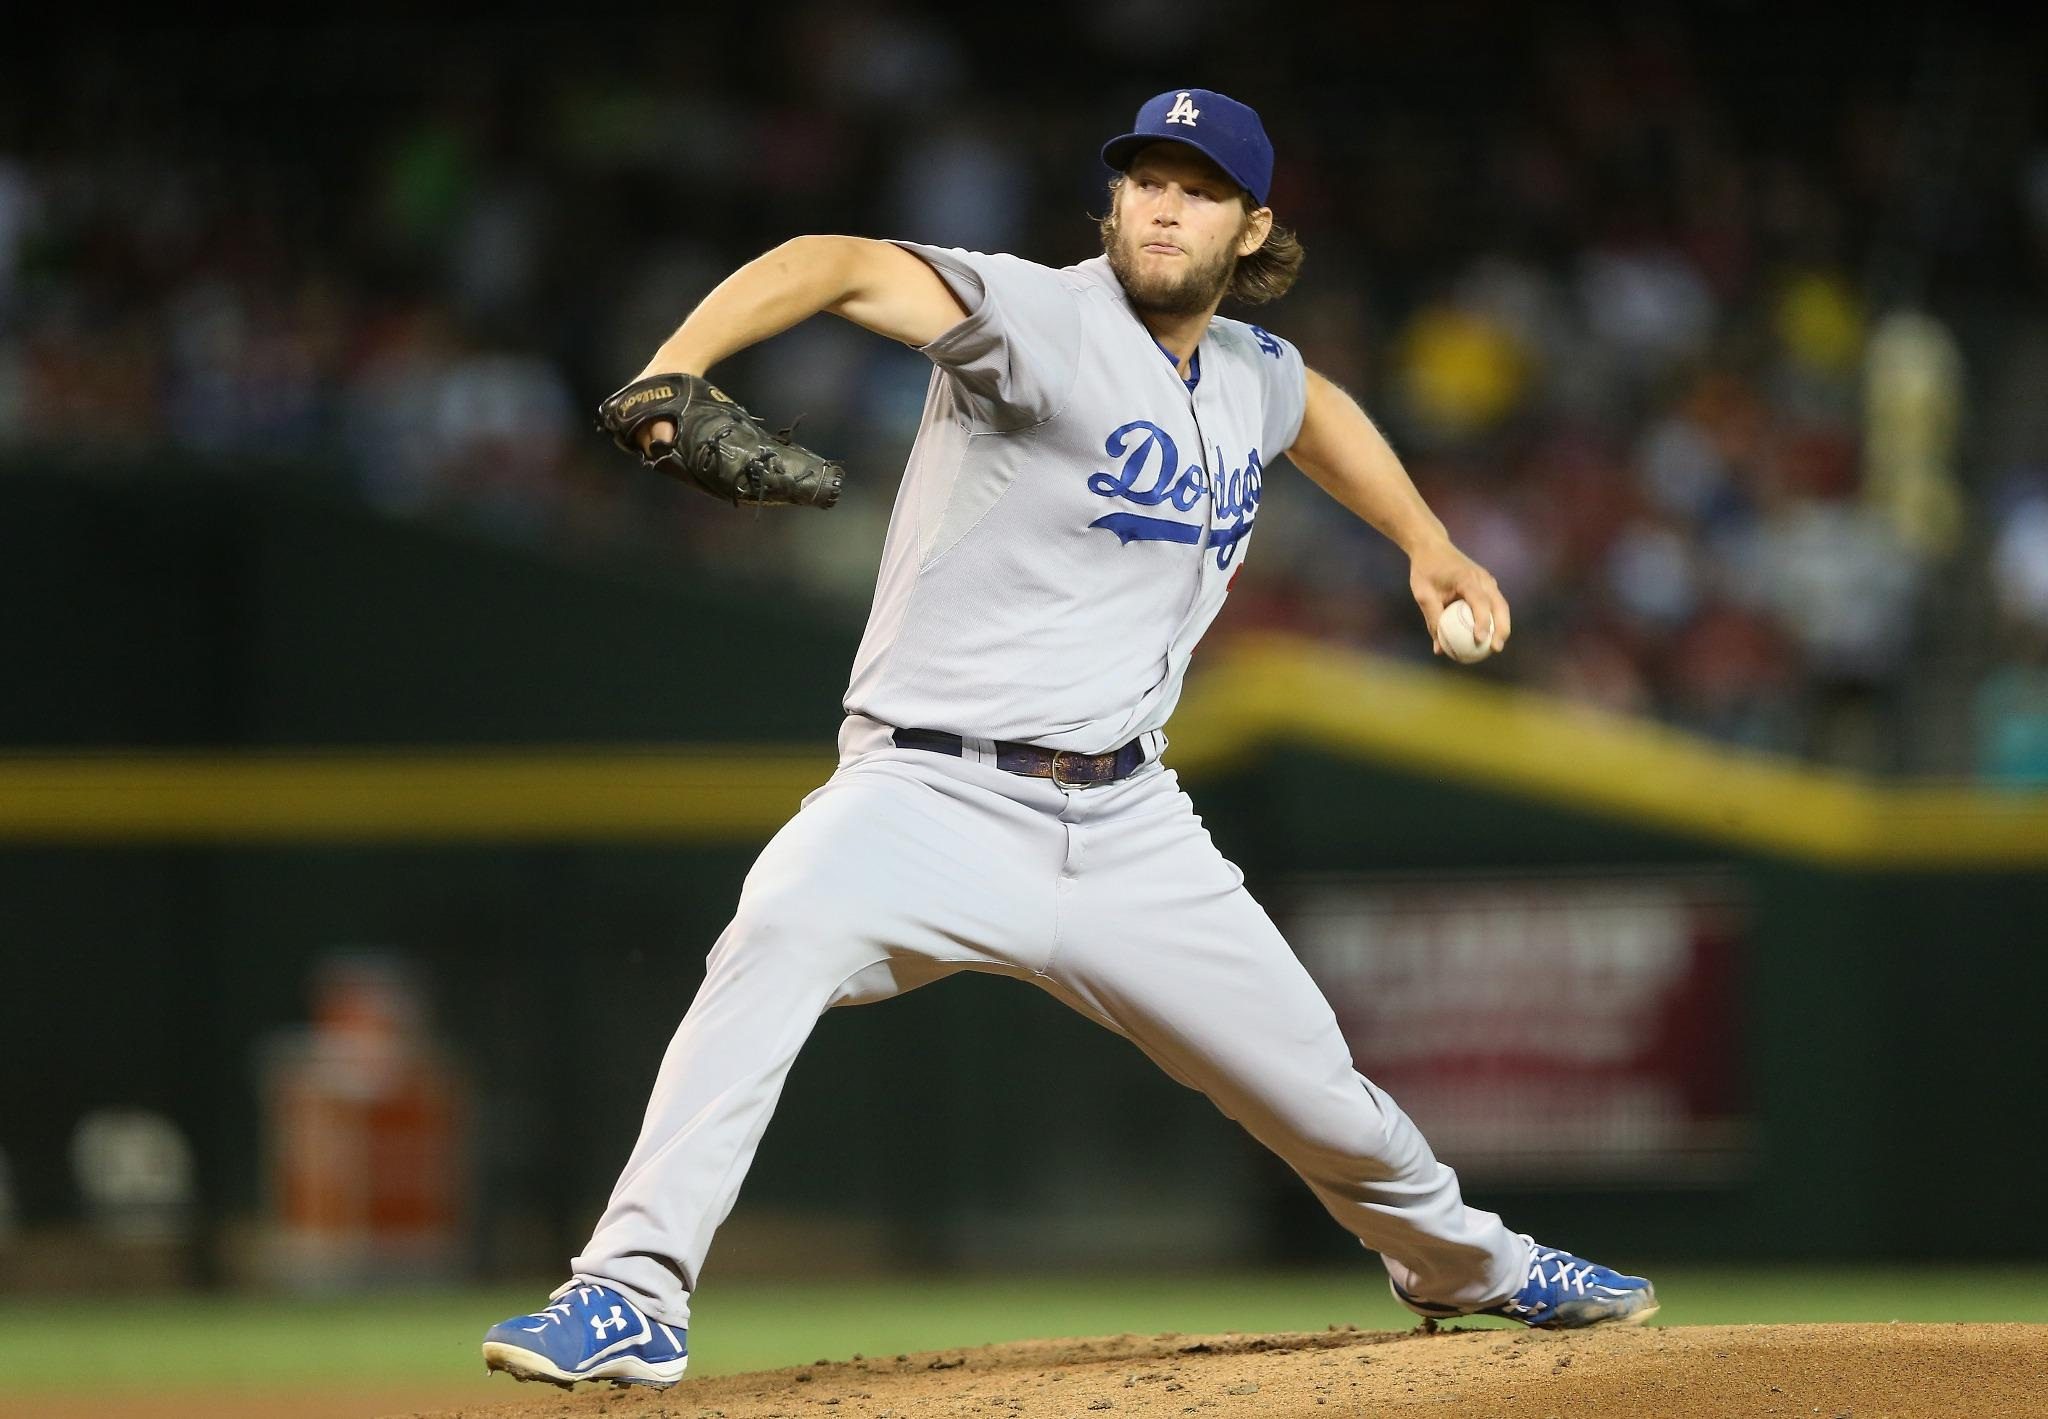 Clayton Kershaw makes dominating look routine. Dodgers beat Dbacks, 3-1, as Kershaw allows 1 unearned run over 8 IP. http://t.co/Bp13m6KVtb